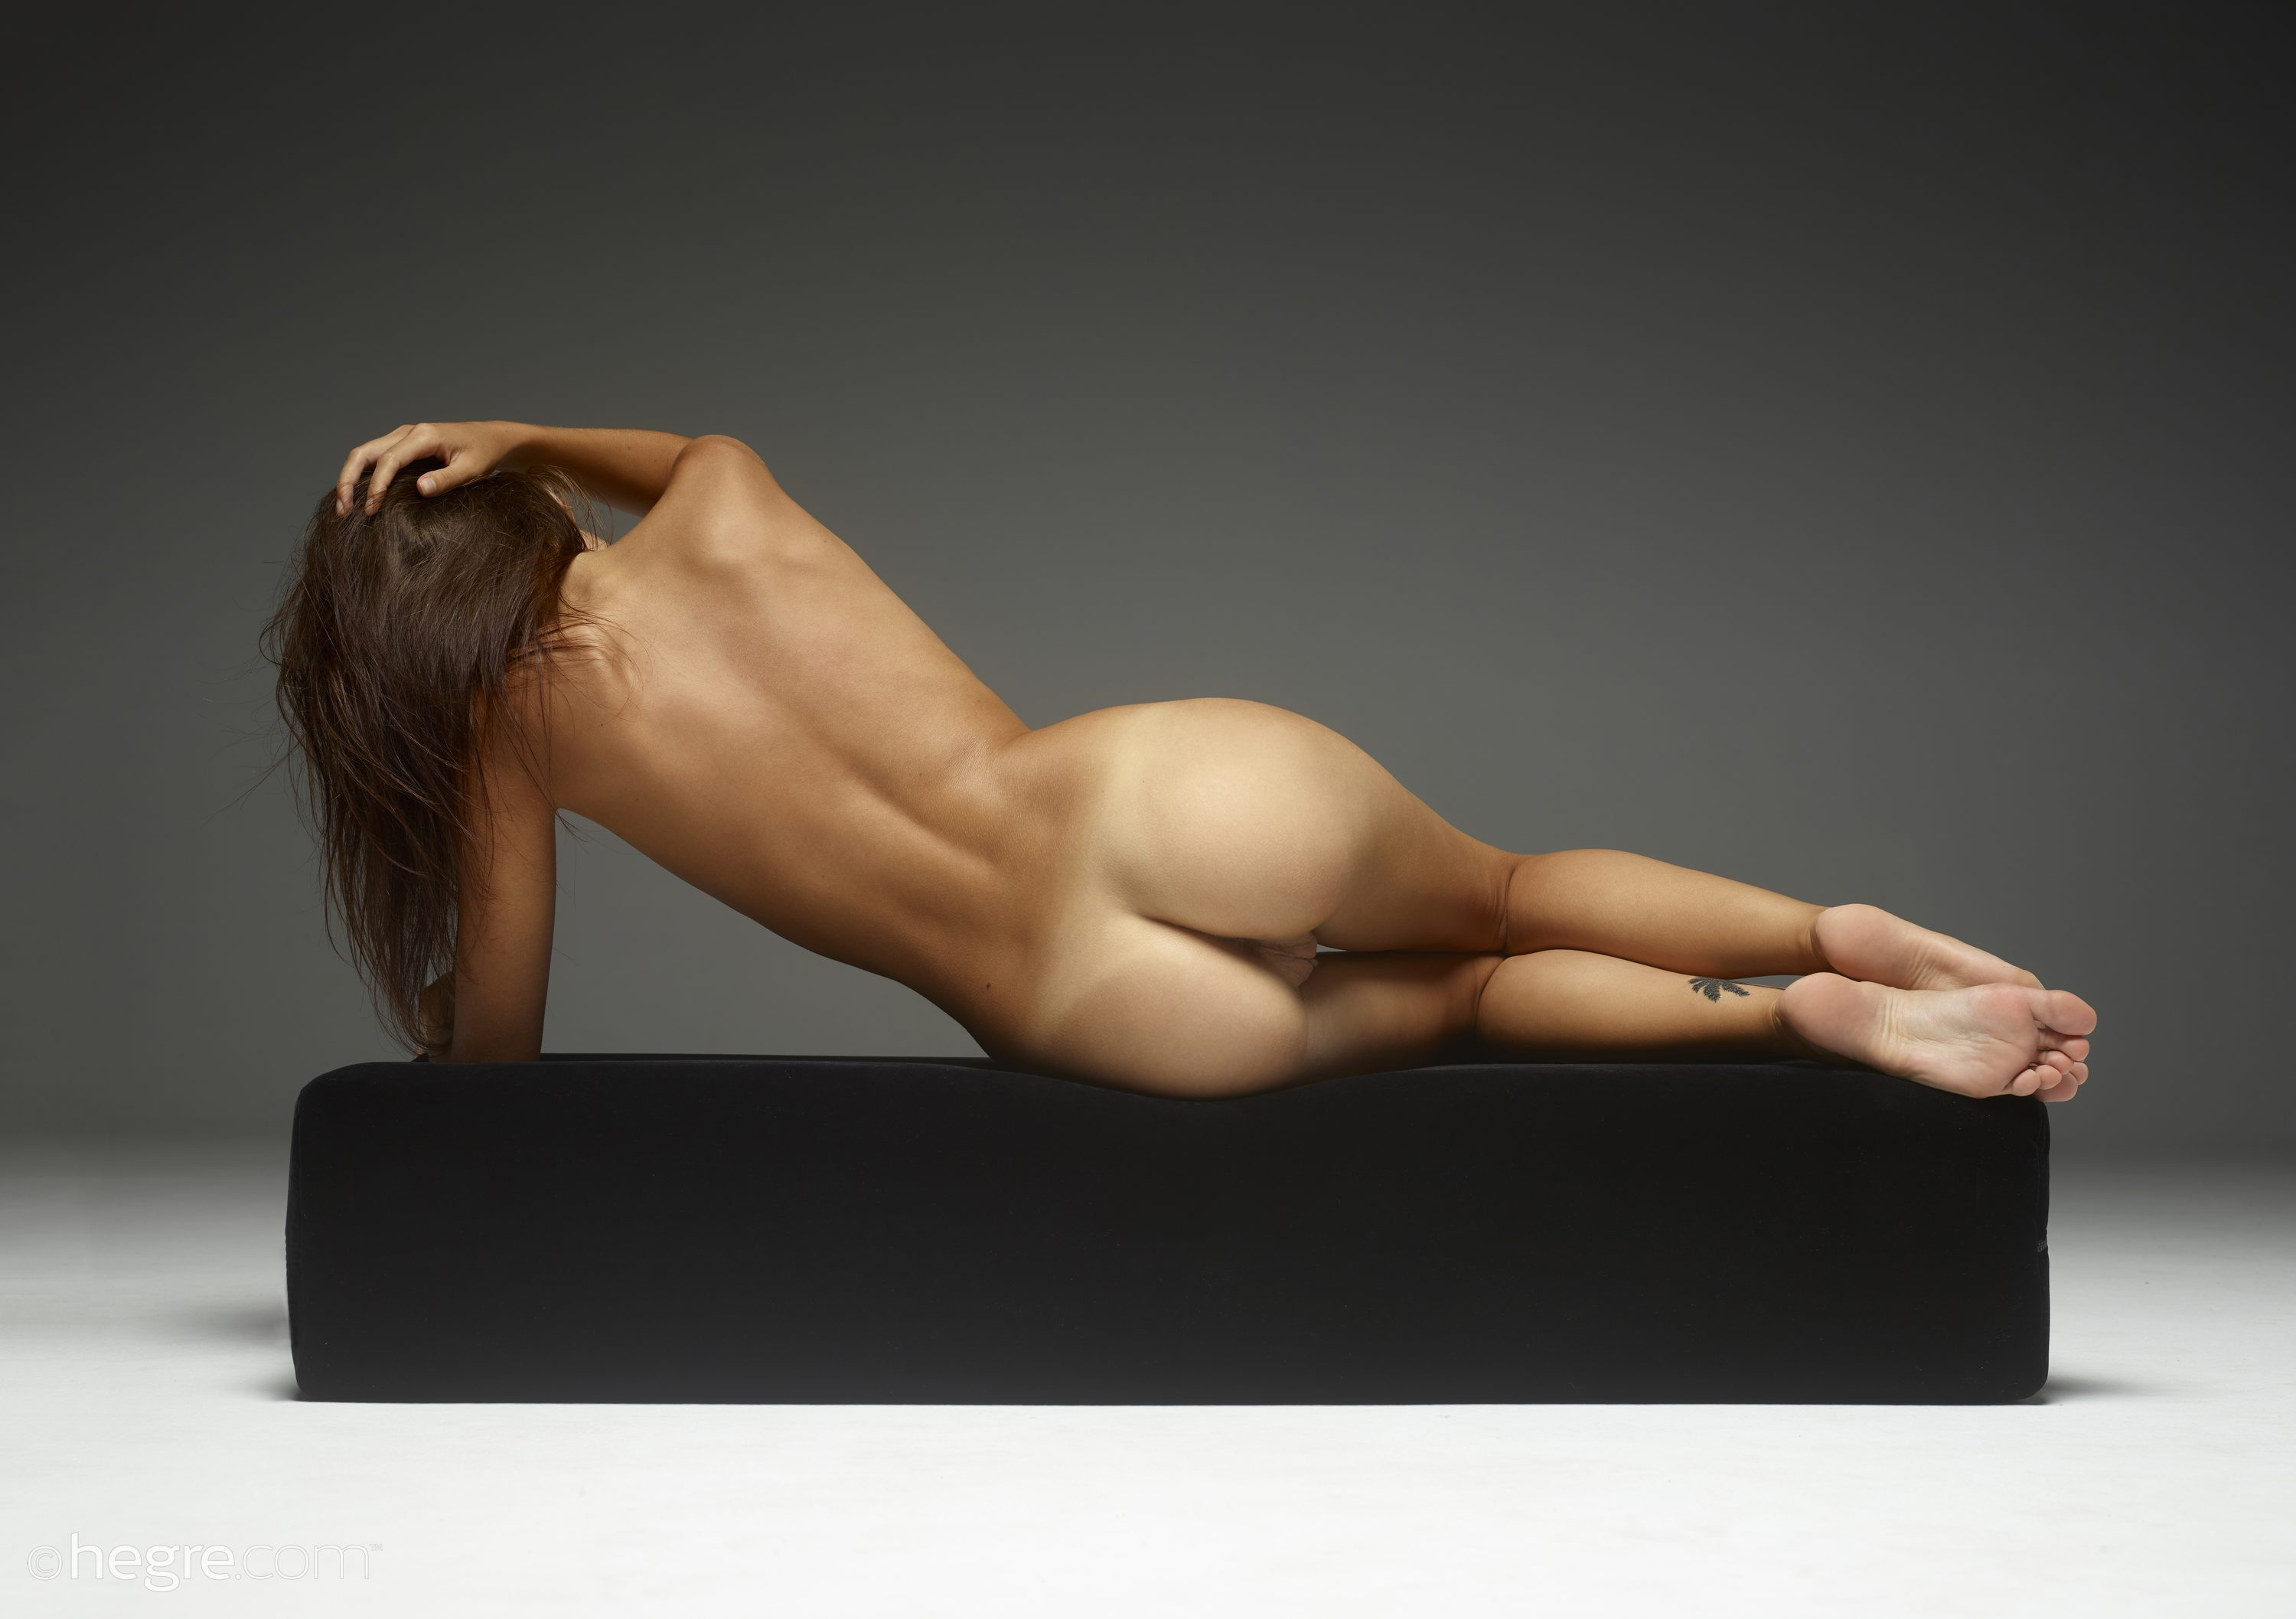 Nude art forms